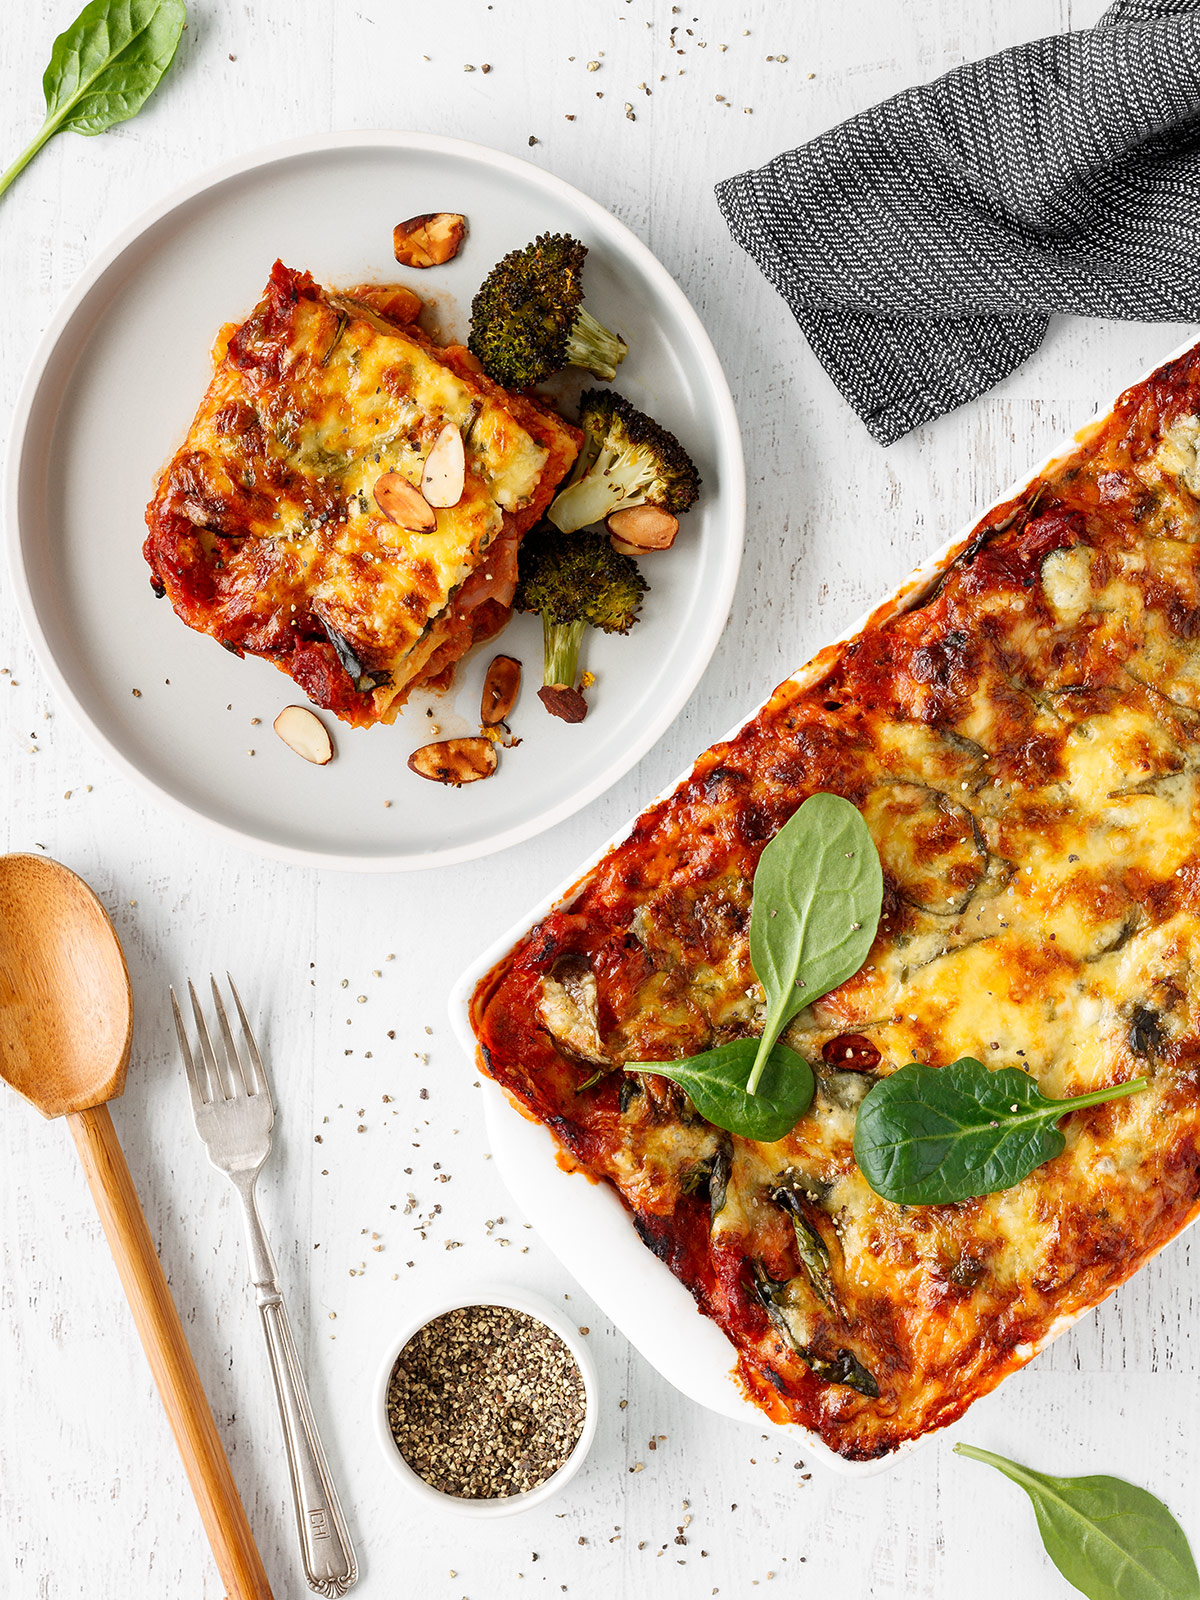 Easy vegetarian lasagne with roasted broccoli.